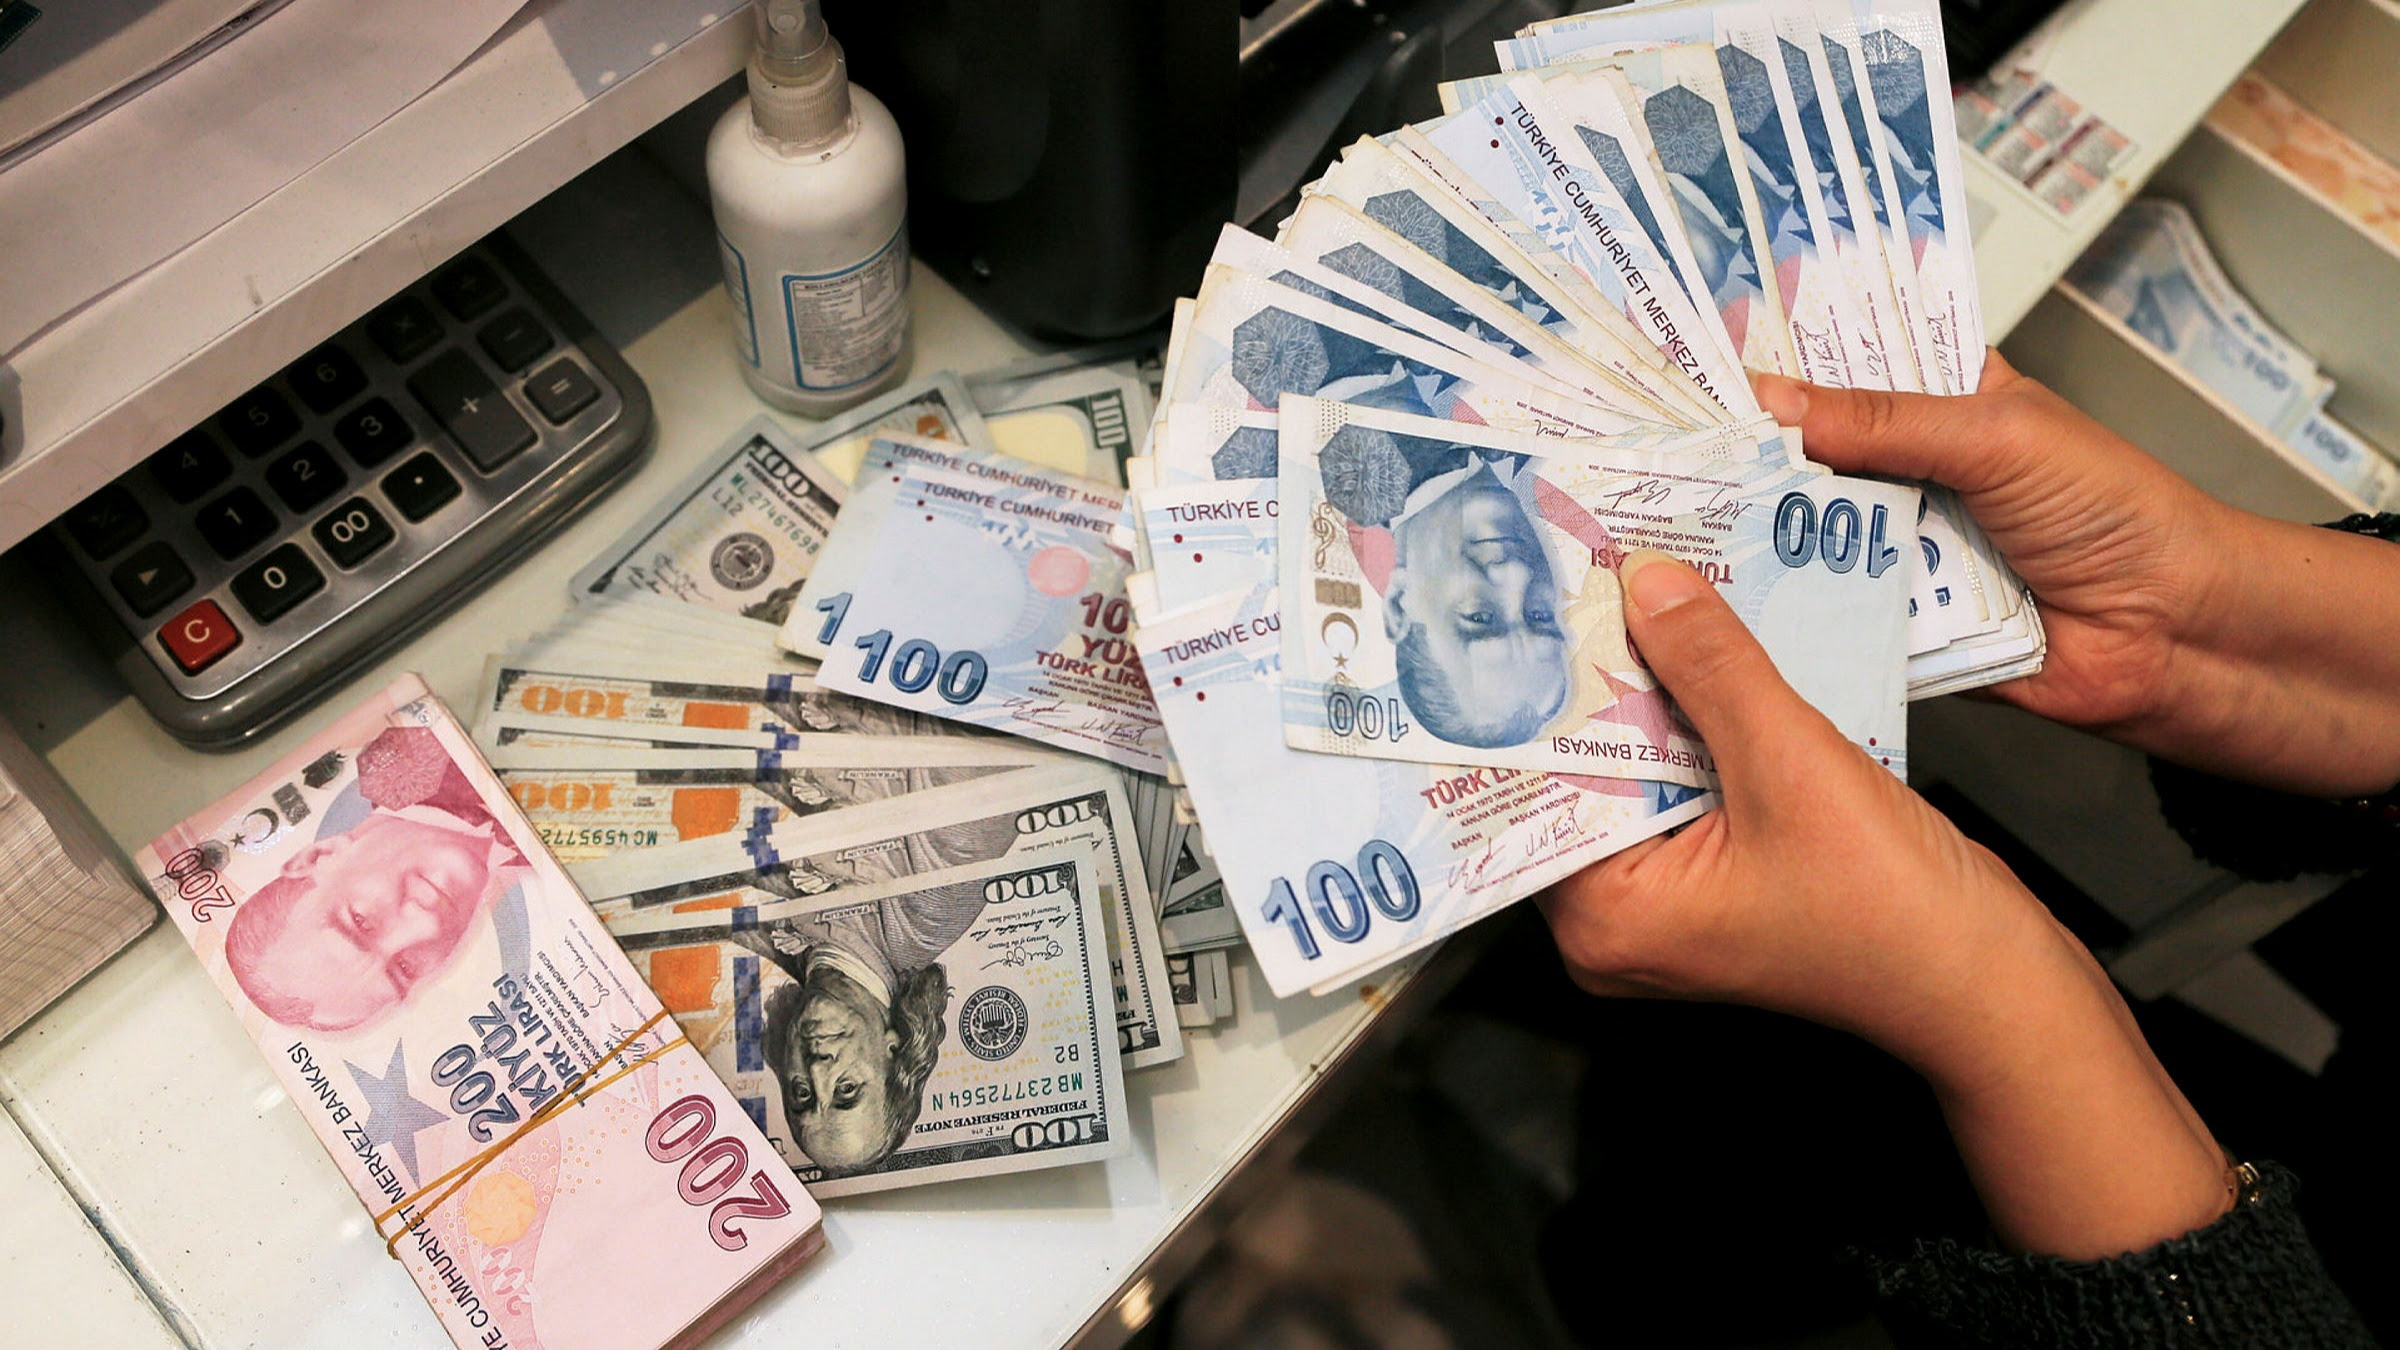 Latest news updates: Turkish lira tumbles to record after Erdogan sacks central bank officials